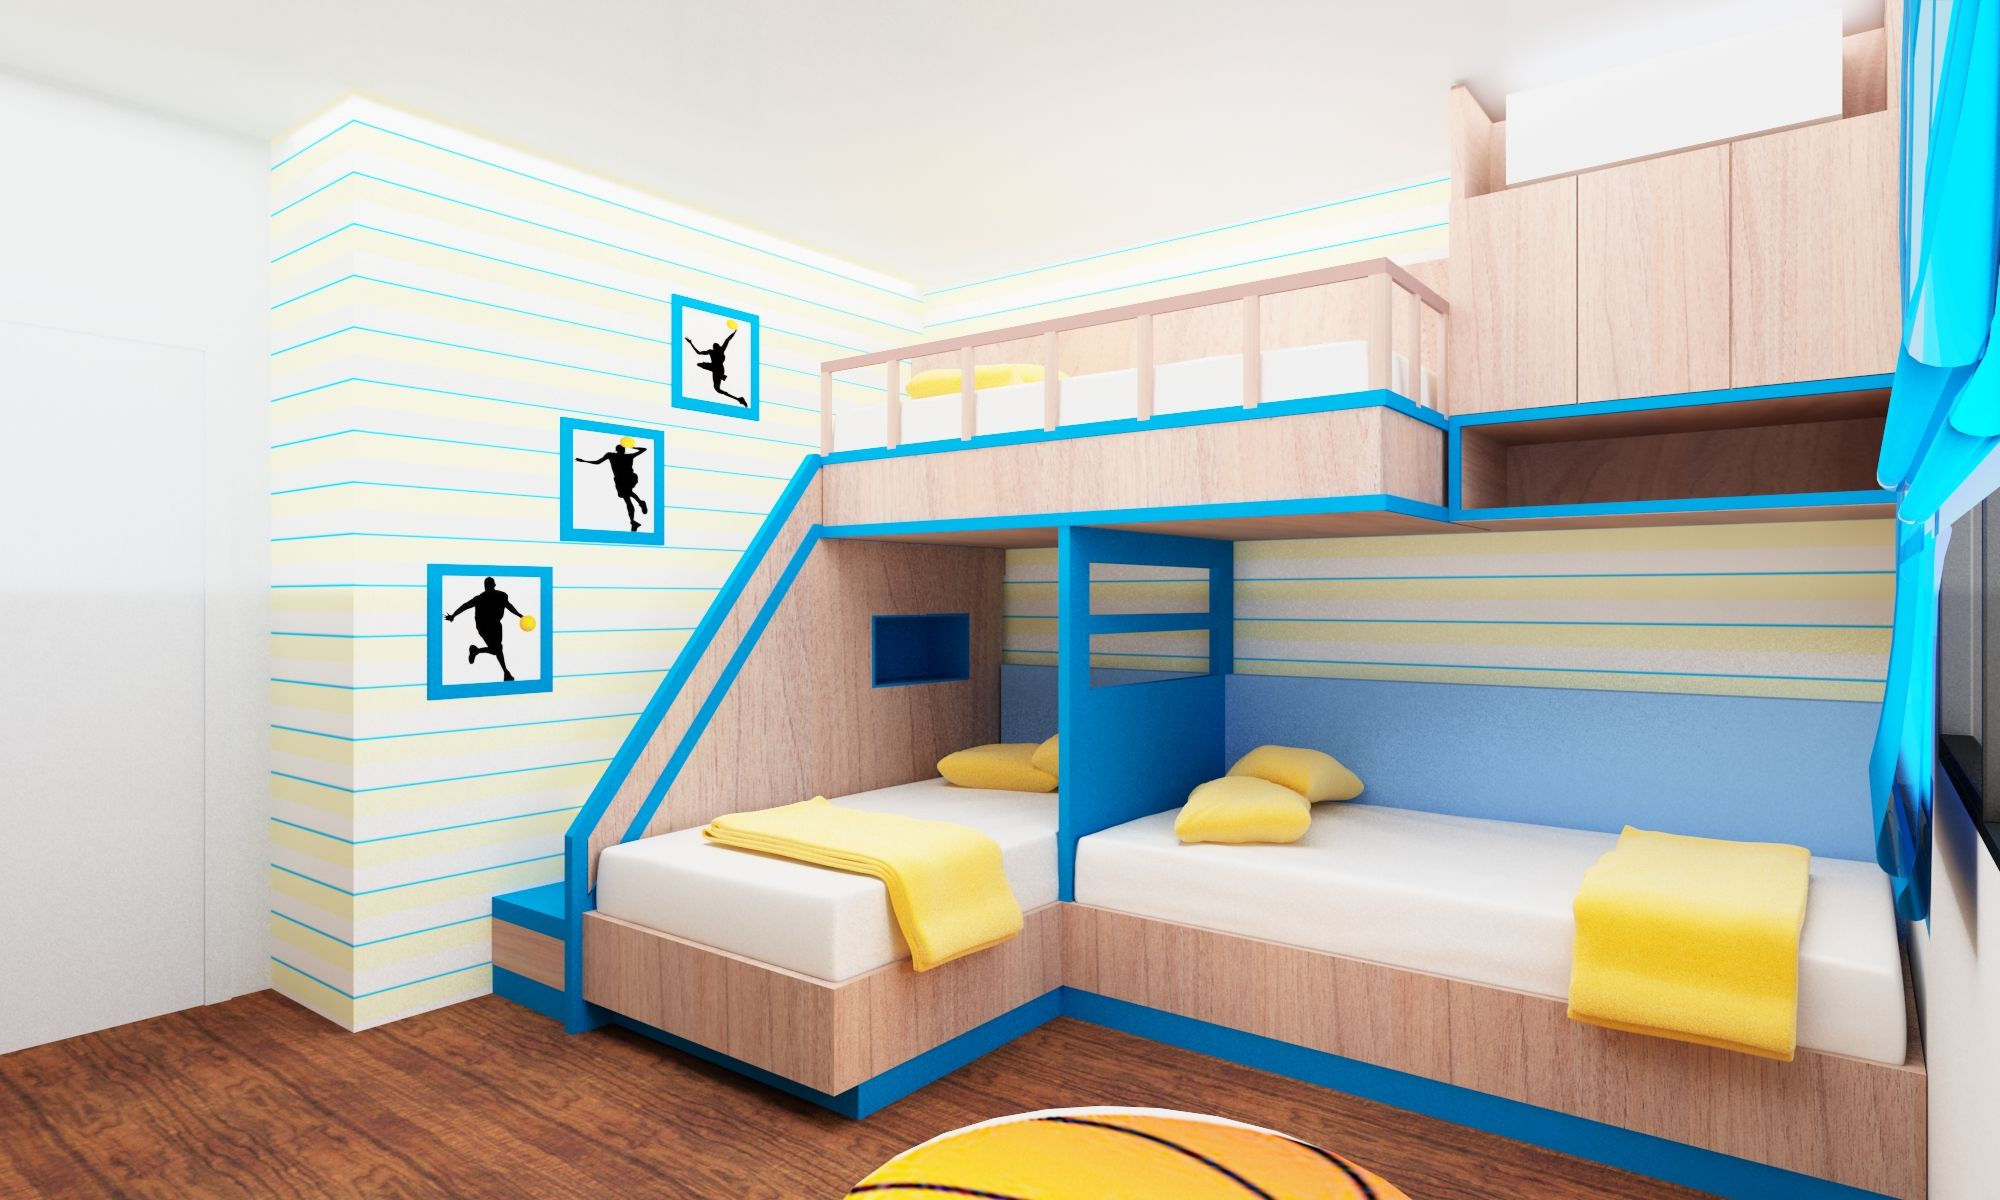 Bunk bed for small space chasing the feeling of intallation homesfeed - Ideas for beds in small spaces model ...